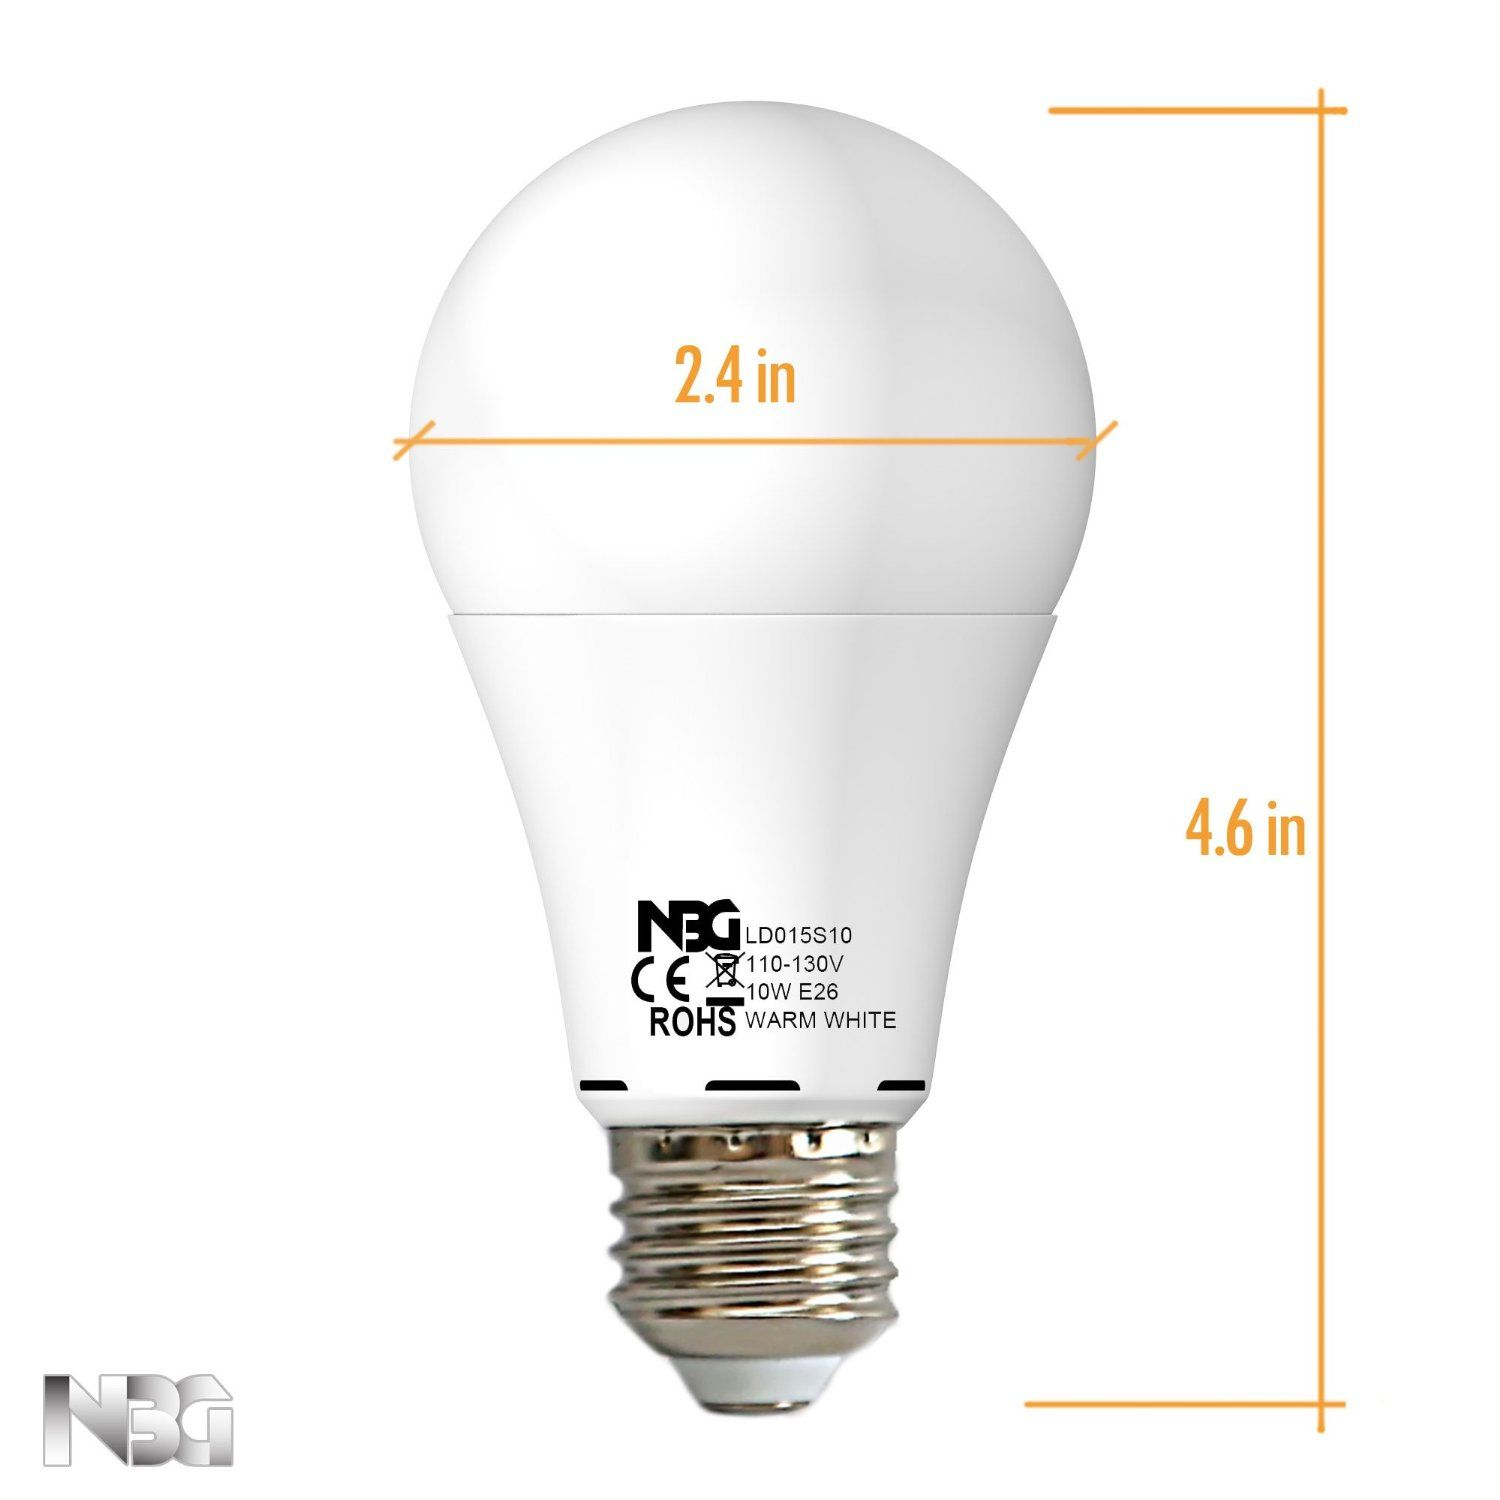 Nova Bg Introduce New Ledlight Bulbs With 10 Watt Non Dimmable Significant Energy Saving Mercury Free Equivalent Of Standar Led Light Bulbs Led Lights Bulb